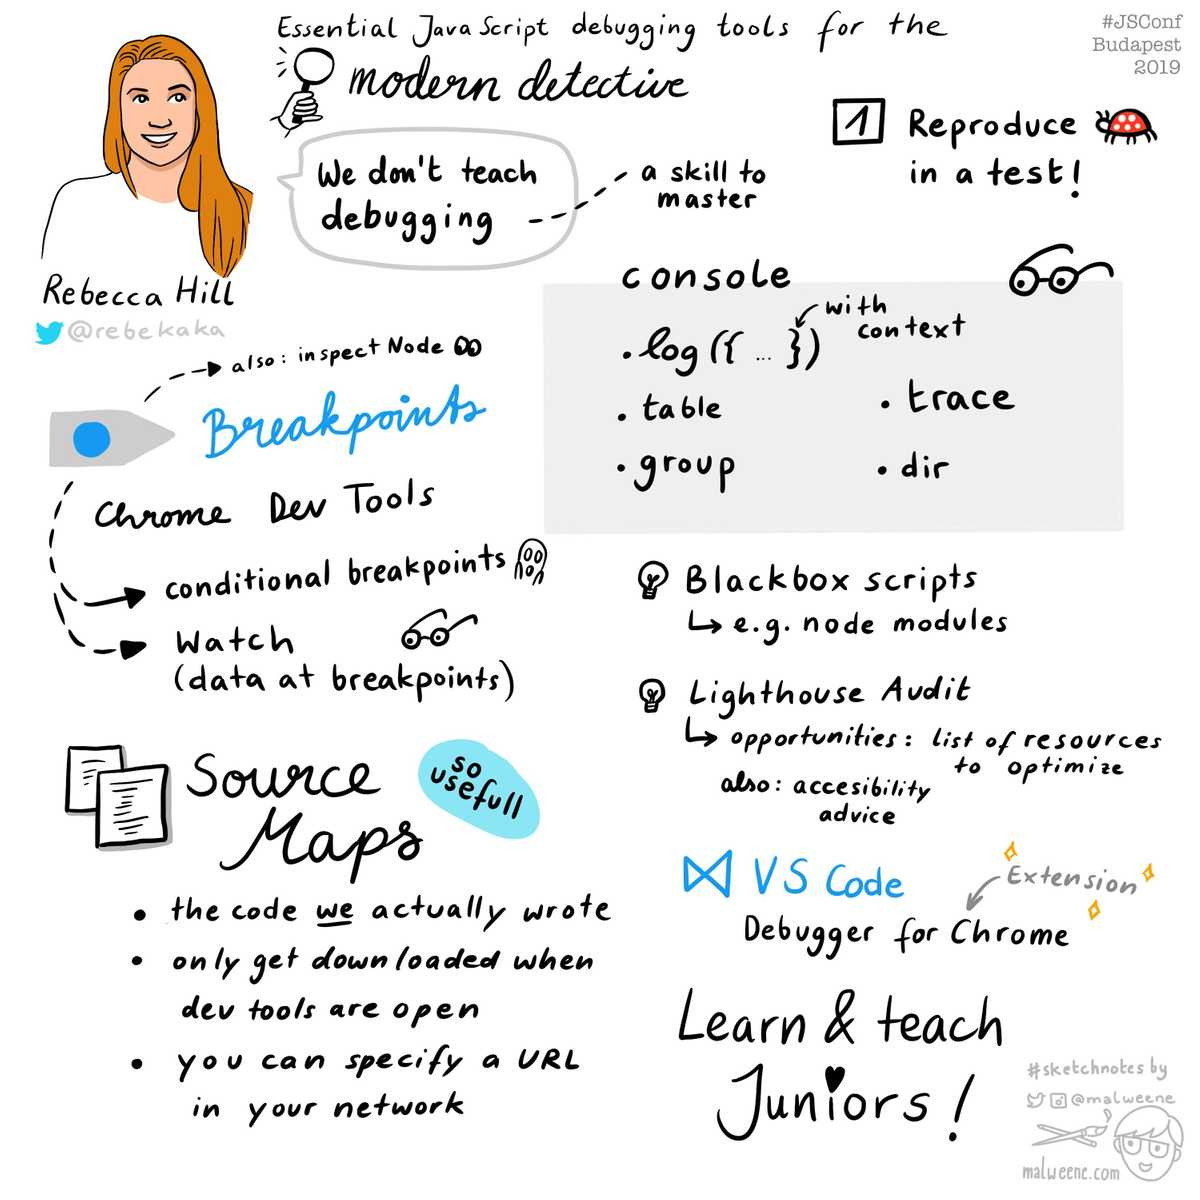 Hand-drawn sketch notes summarizing the talk of Rebecca Hill